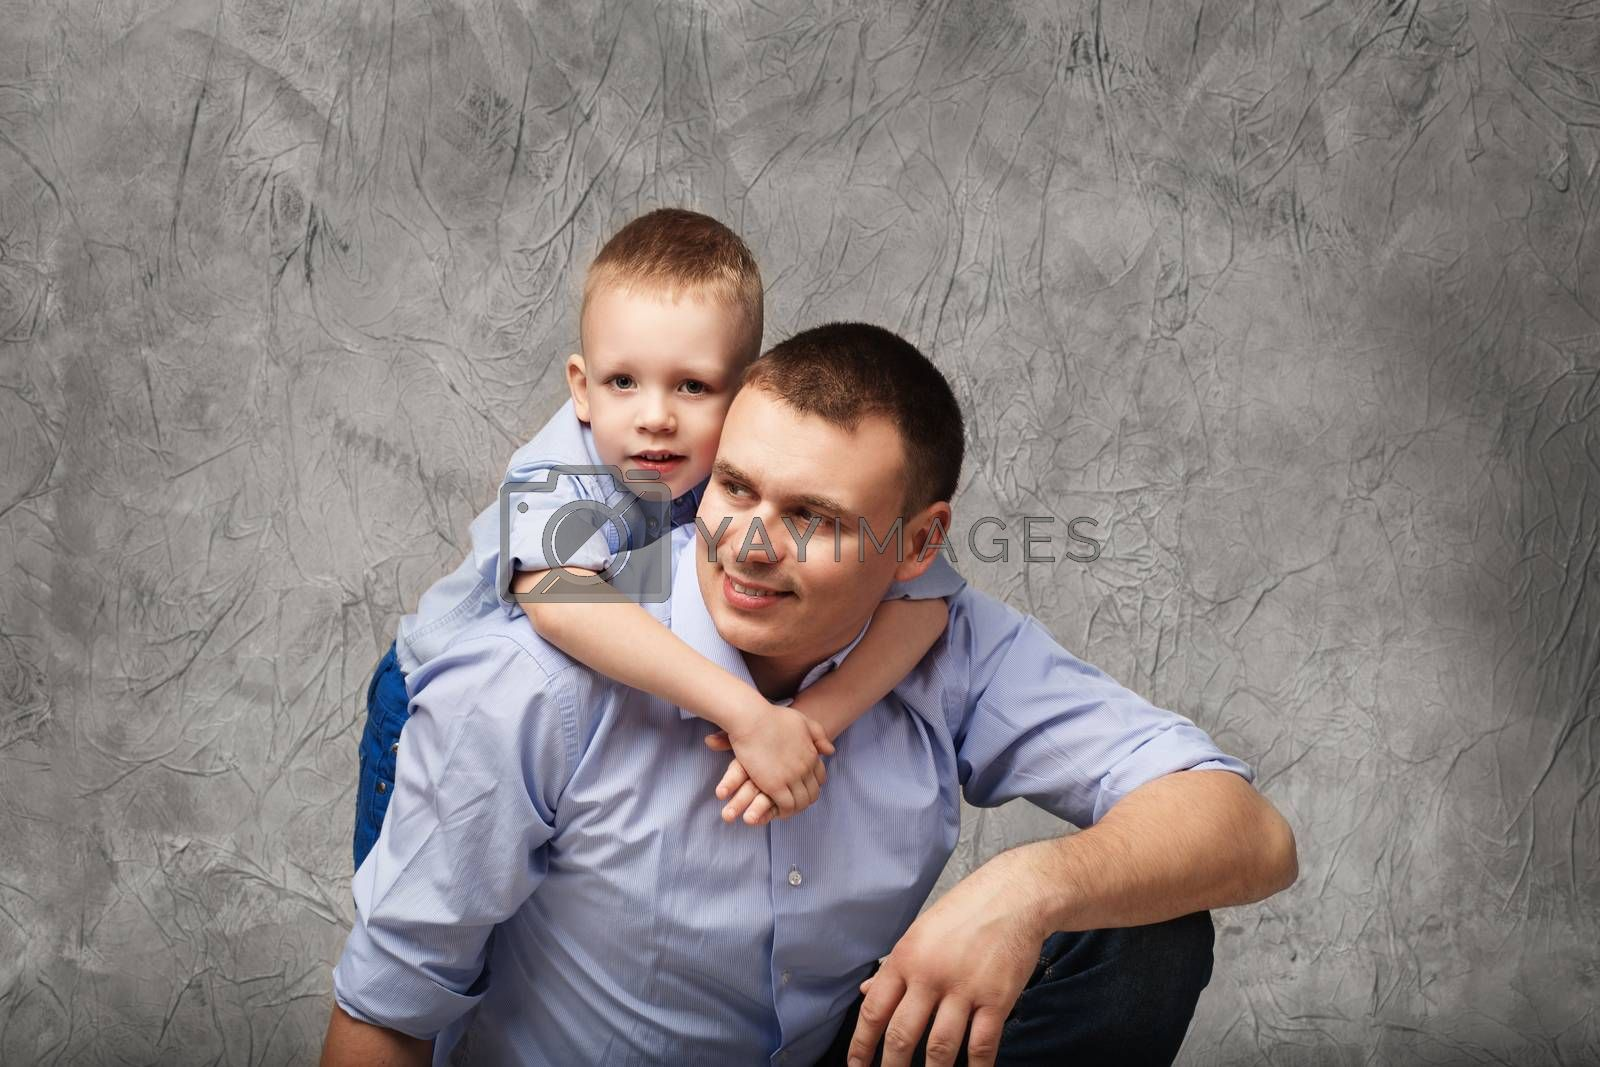 Father and little son in blue shirts in front of gray background by natazhekova